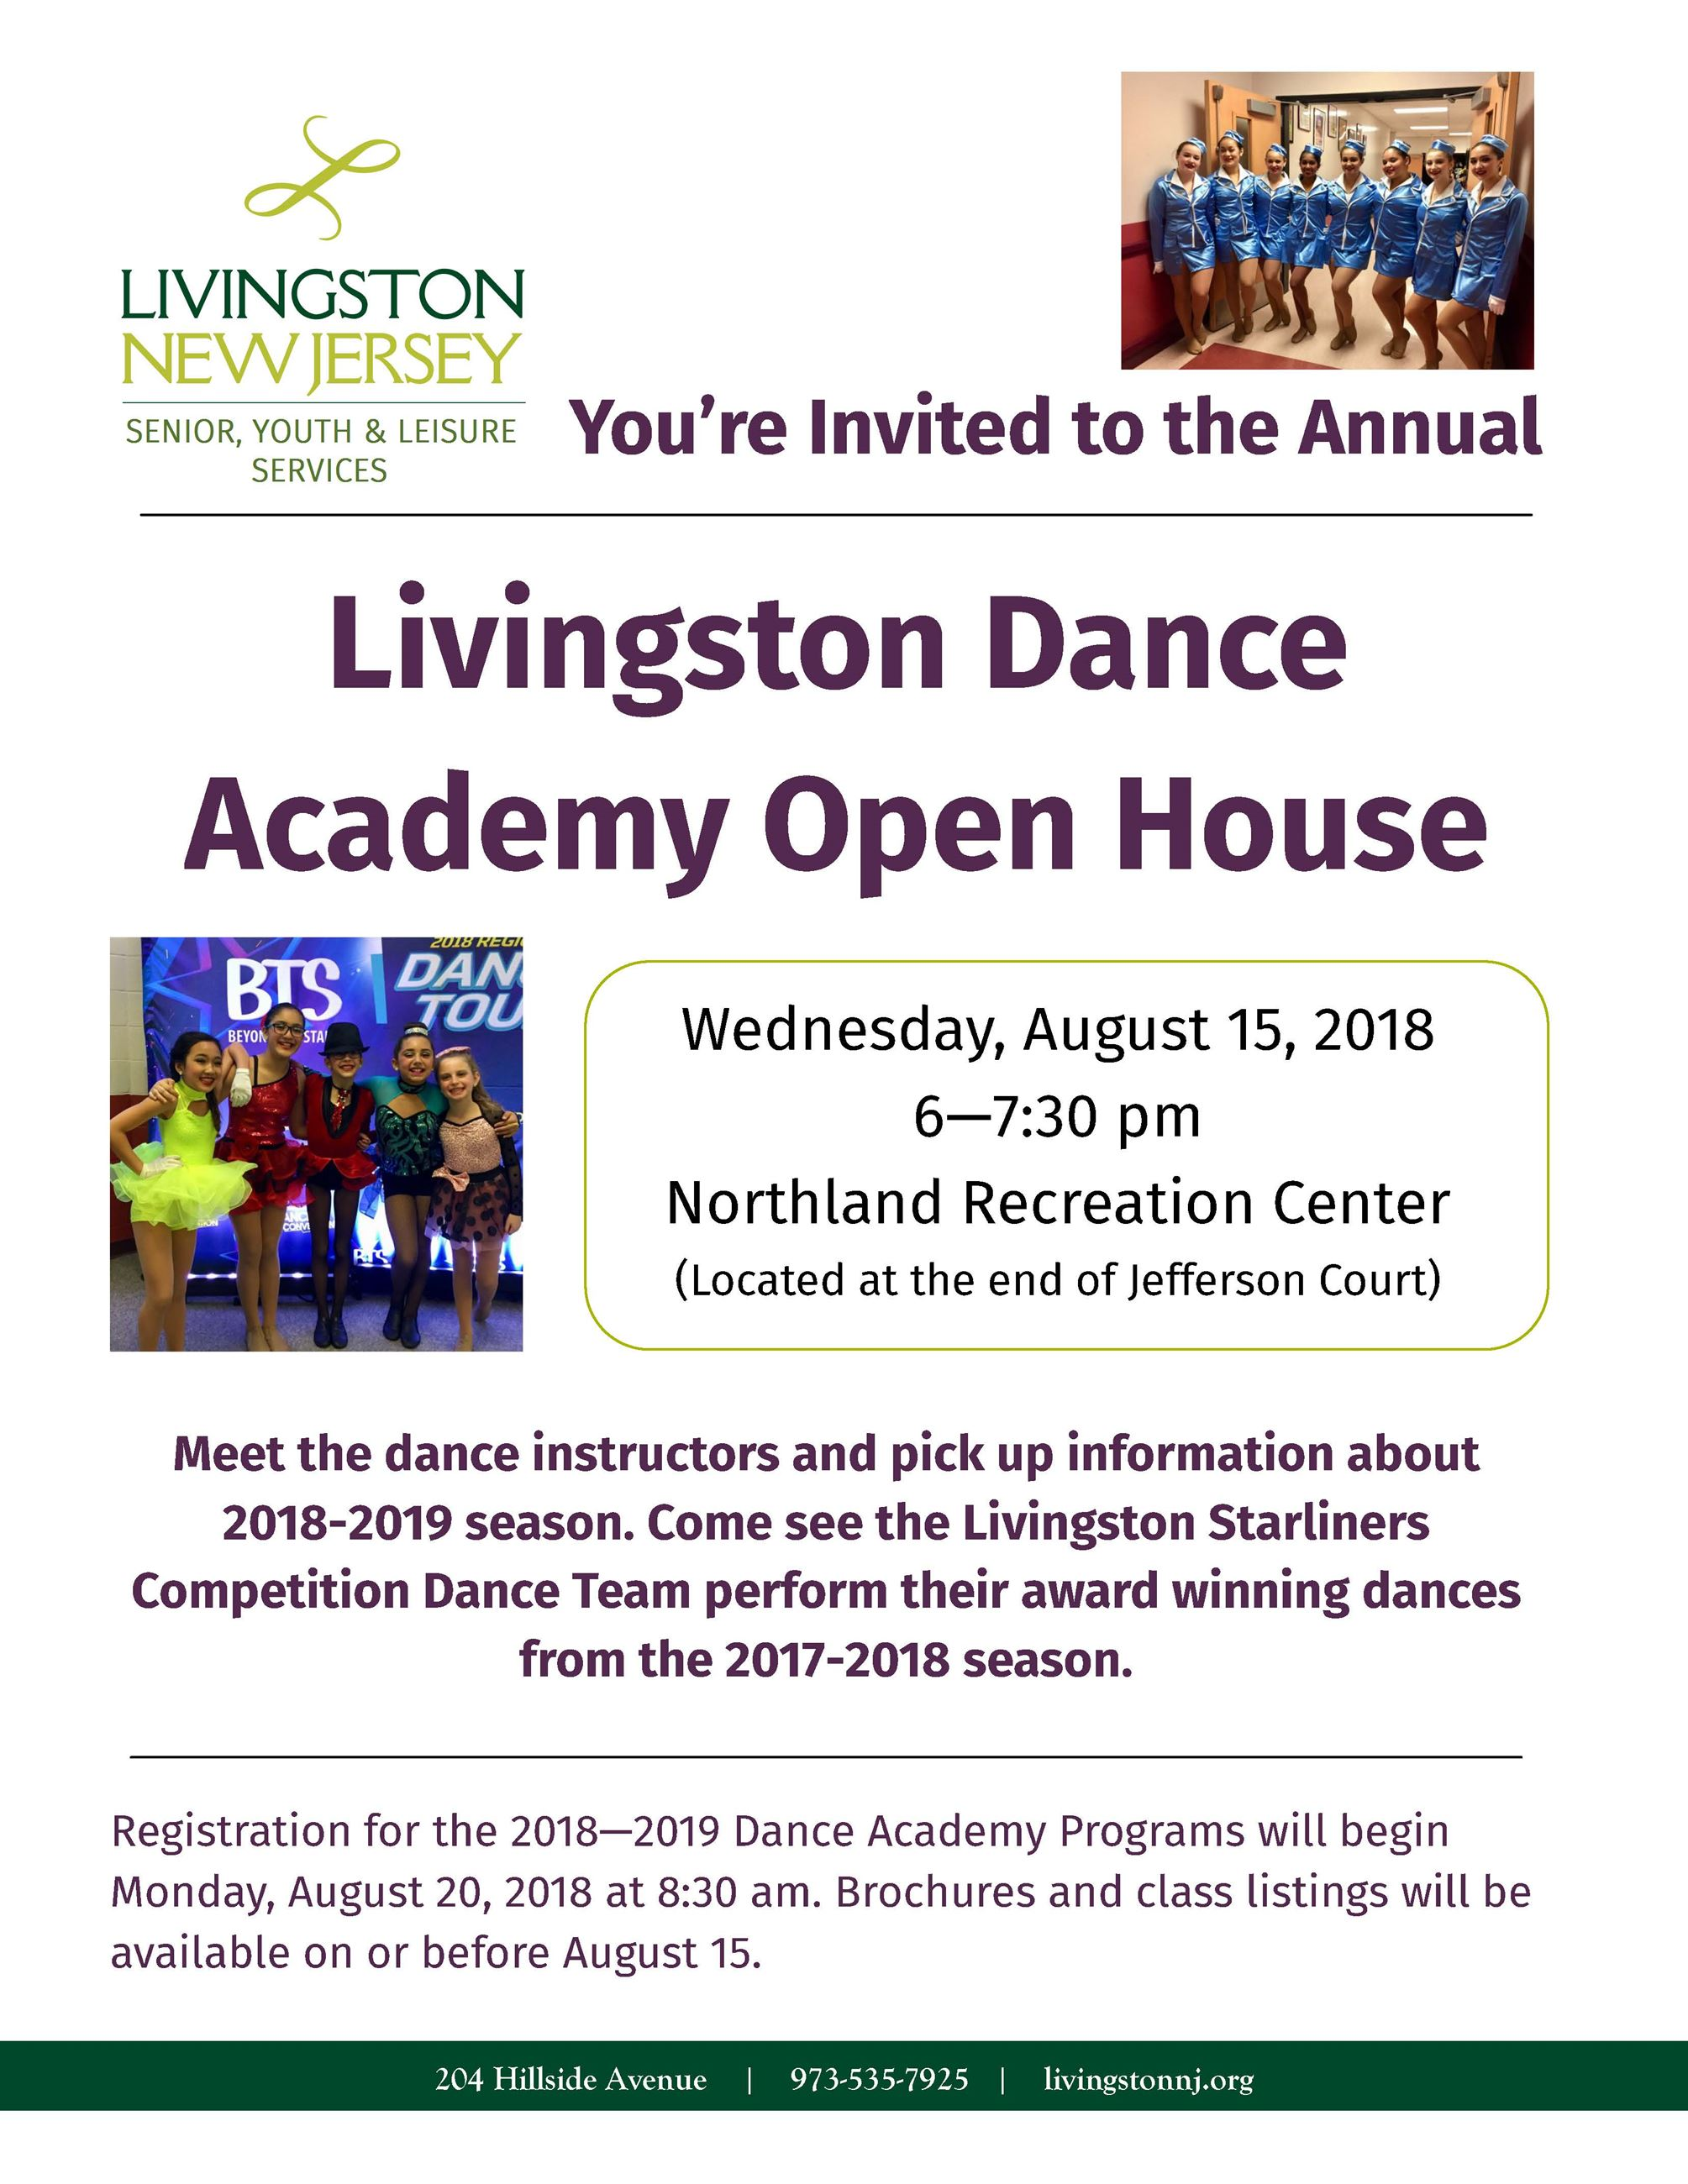 Dance Academy Open House 2018